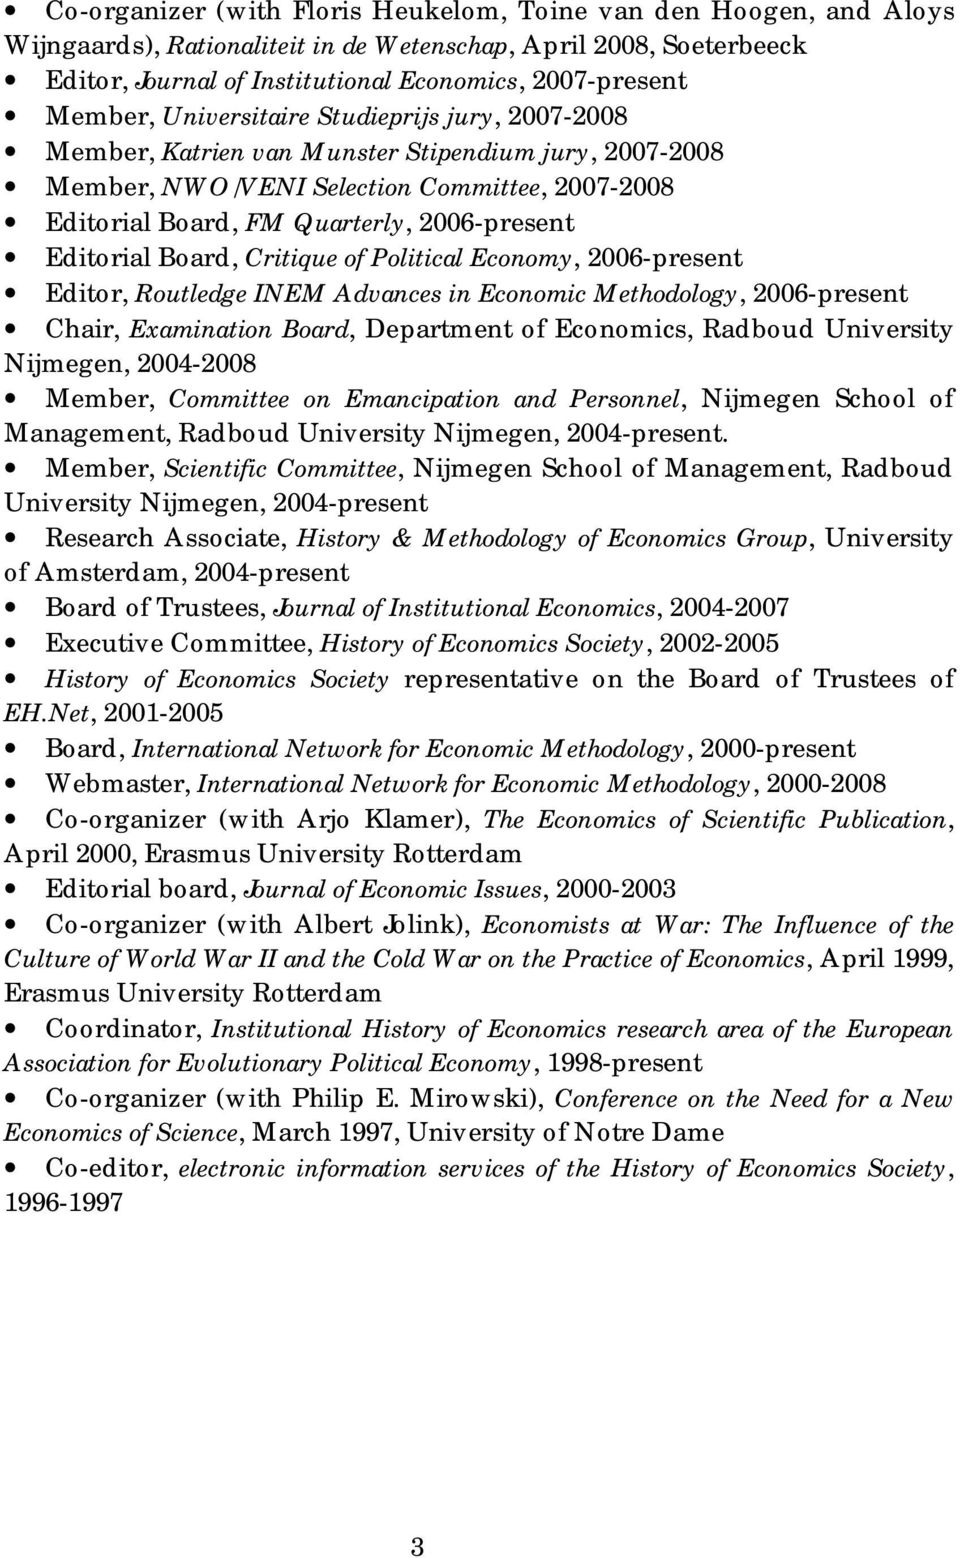 Editorial Board, Critique of Political Economy, 2006-present Editor, Routledge INEM Advances in Economic Methodology, 2006-present Chair, Examination Board, Department of Economics, Radboud